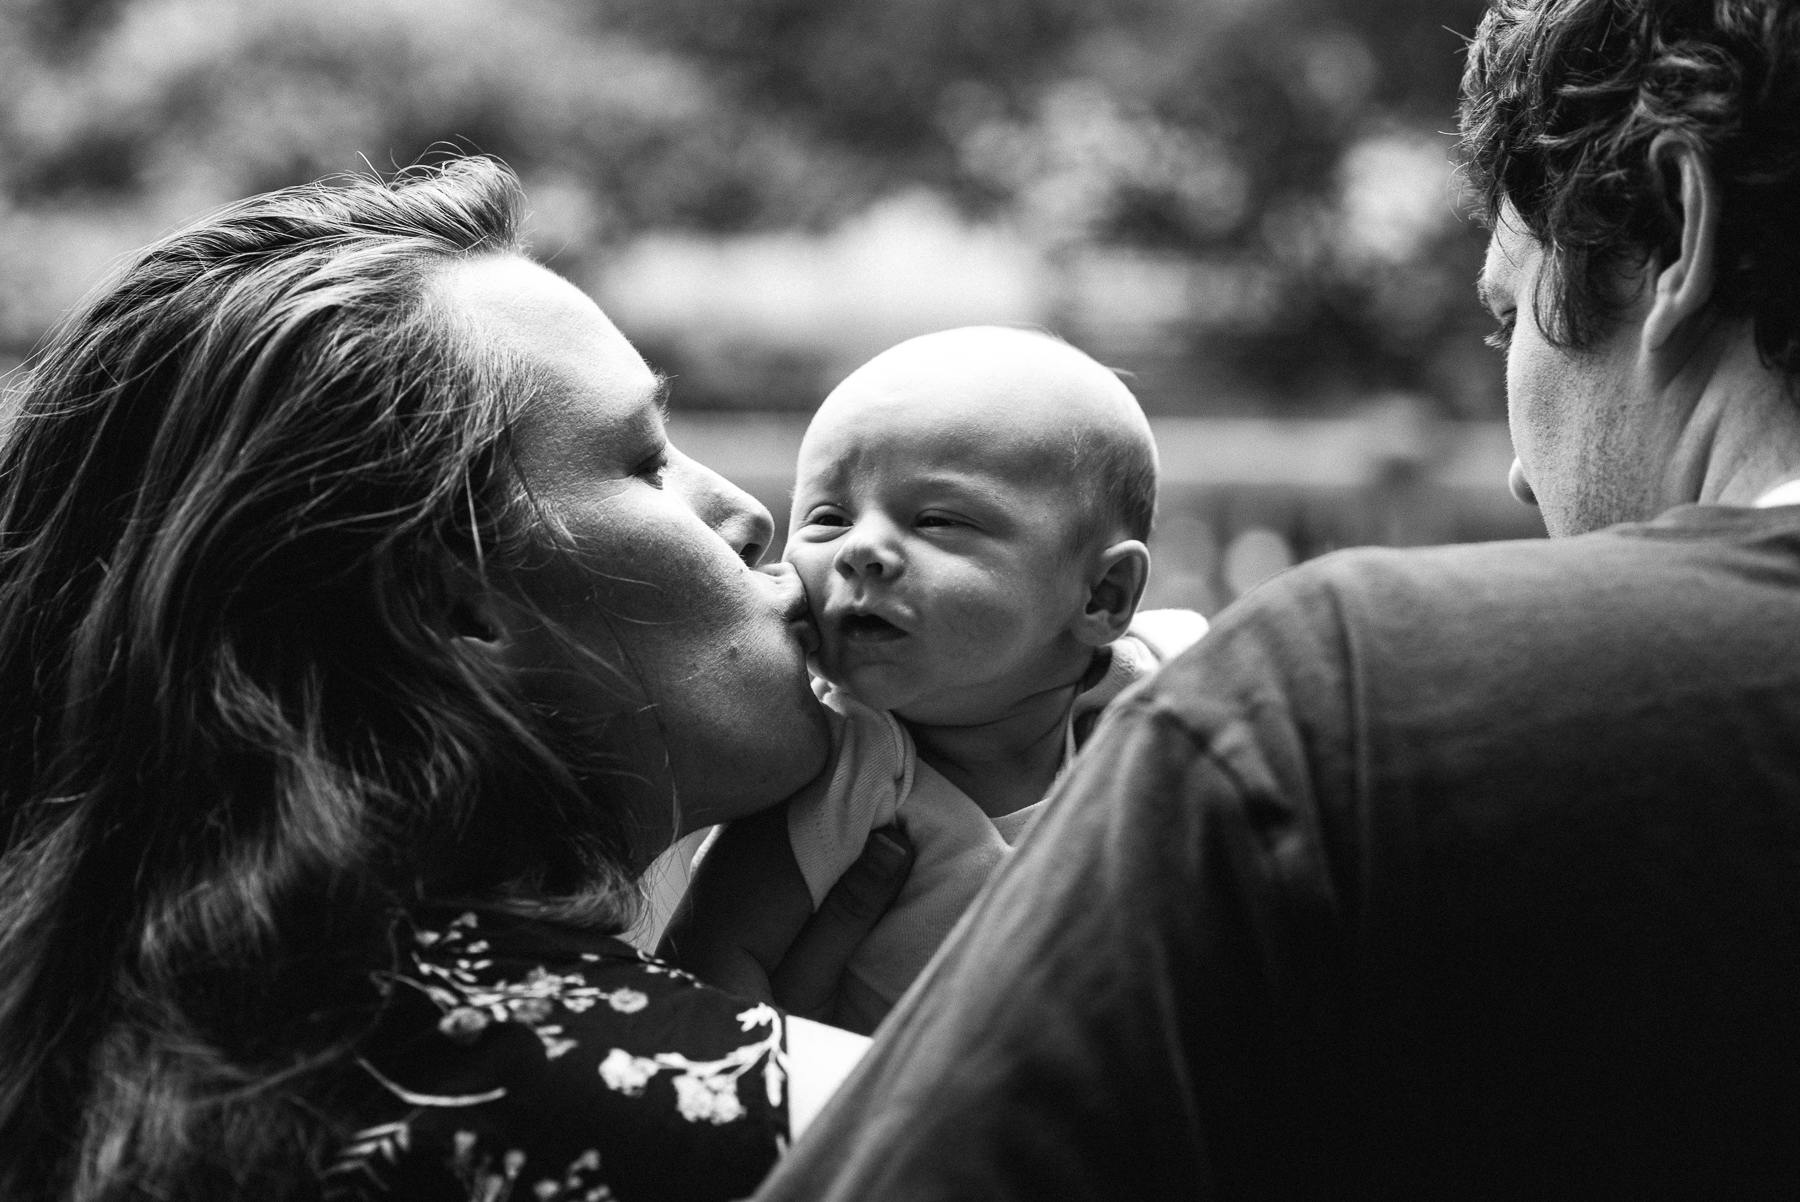 black and white photo of mom kissing newborn baby over dad's shoulder